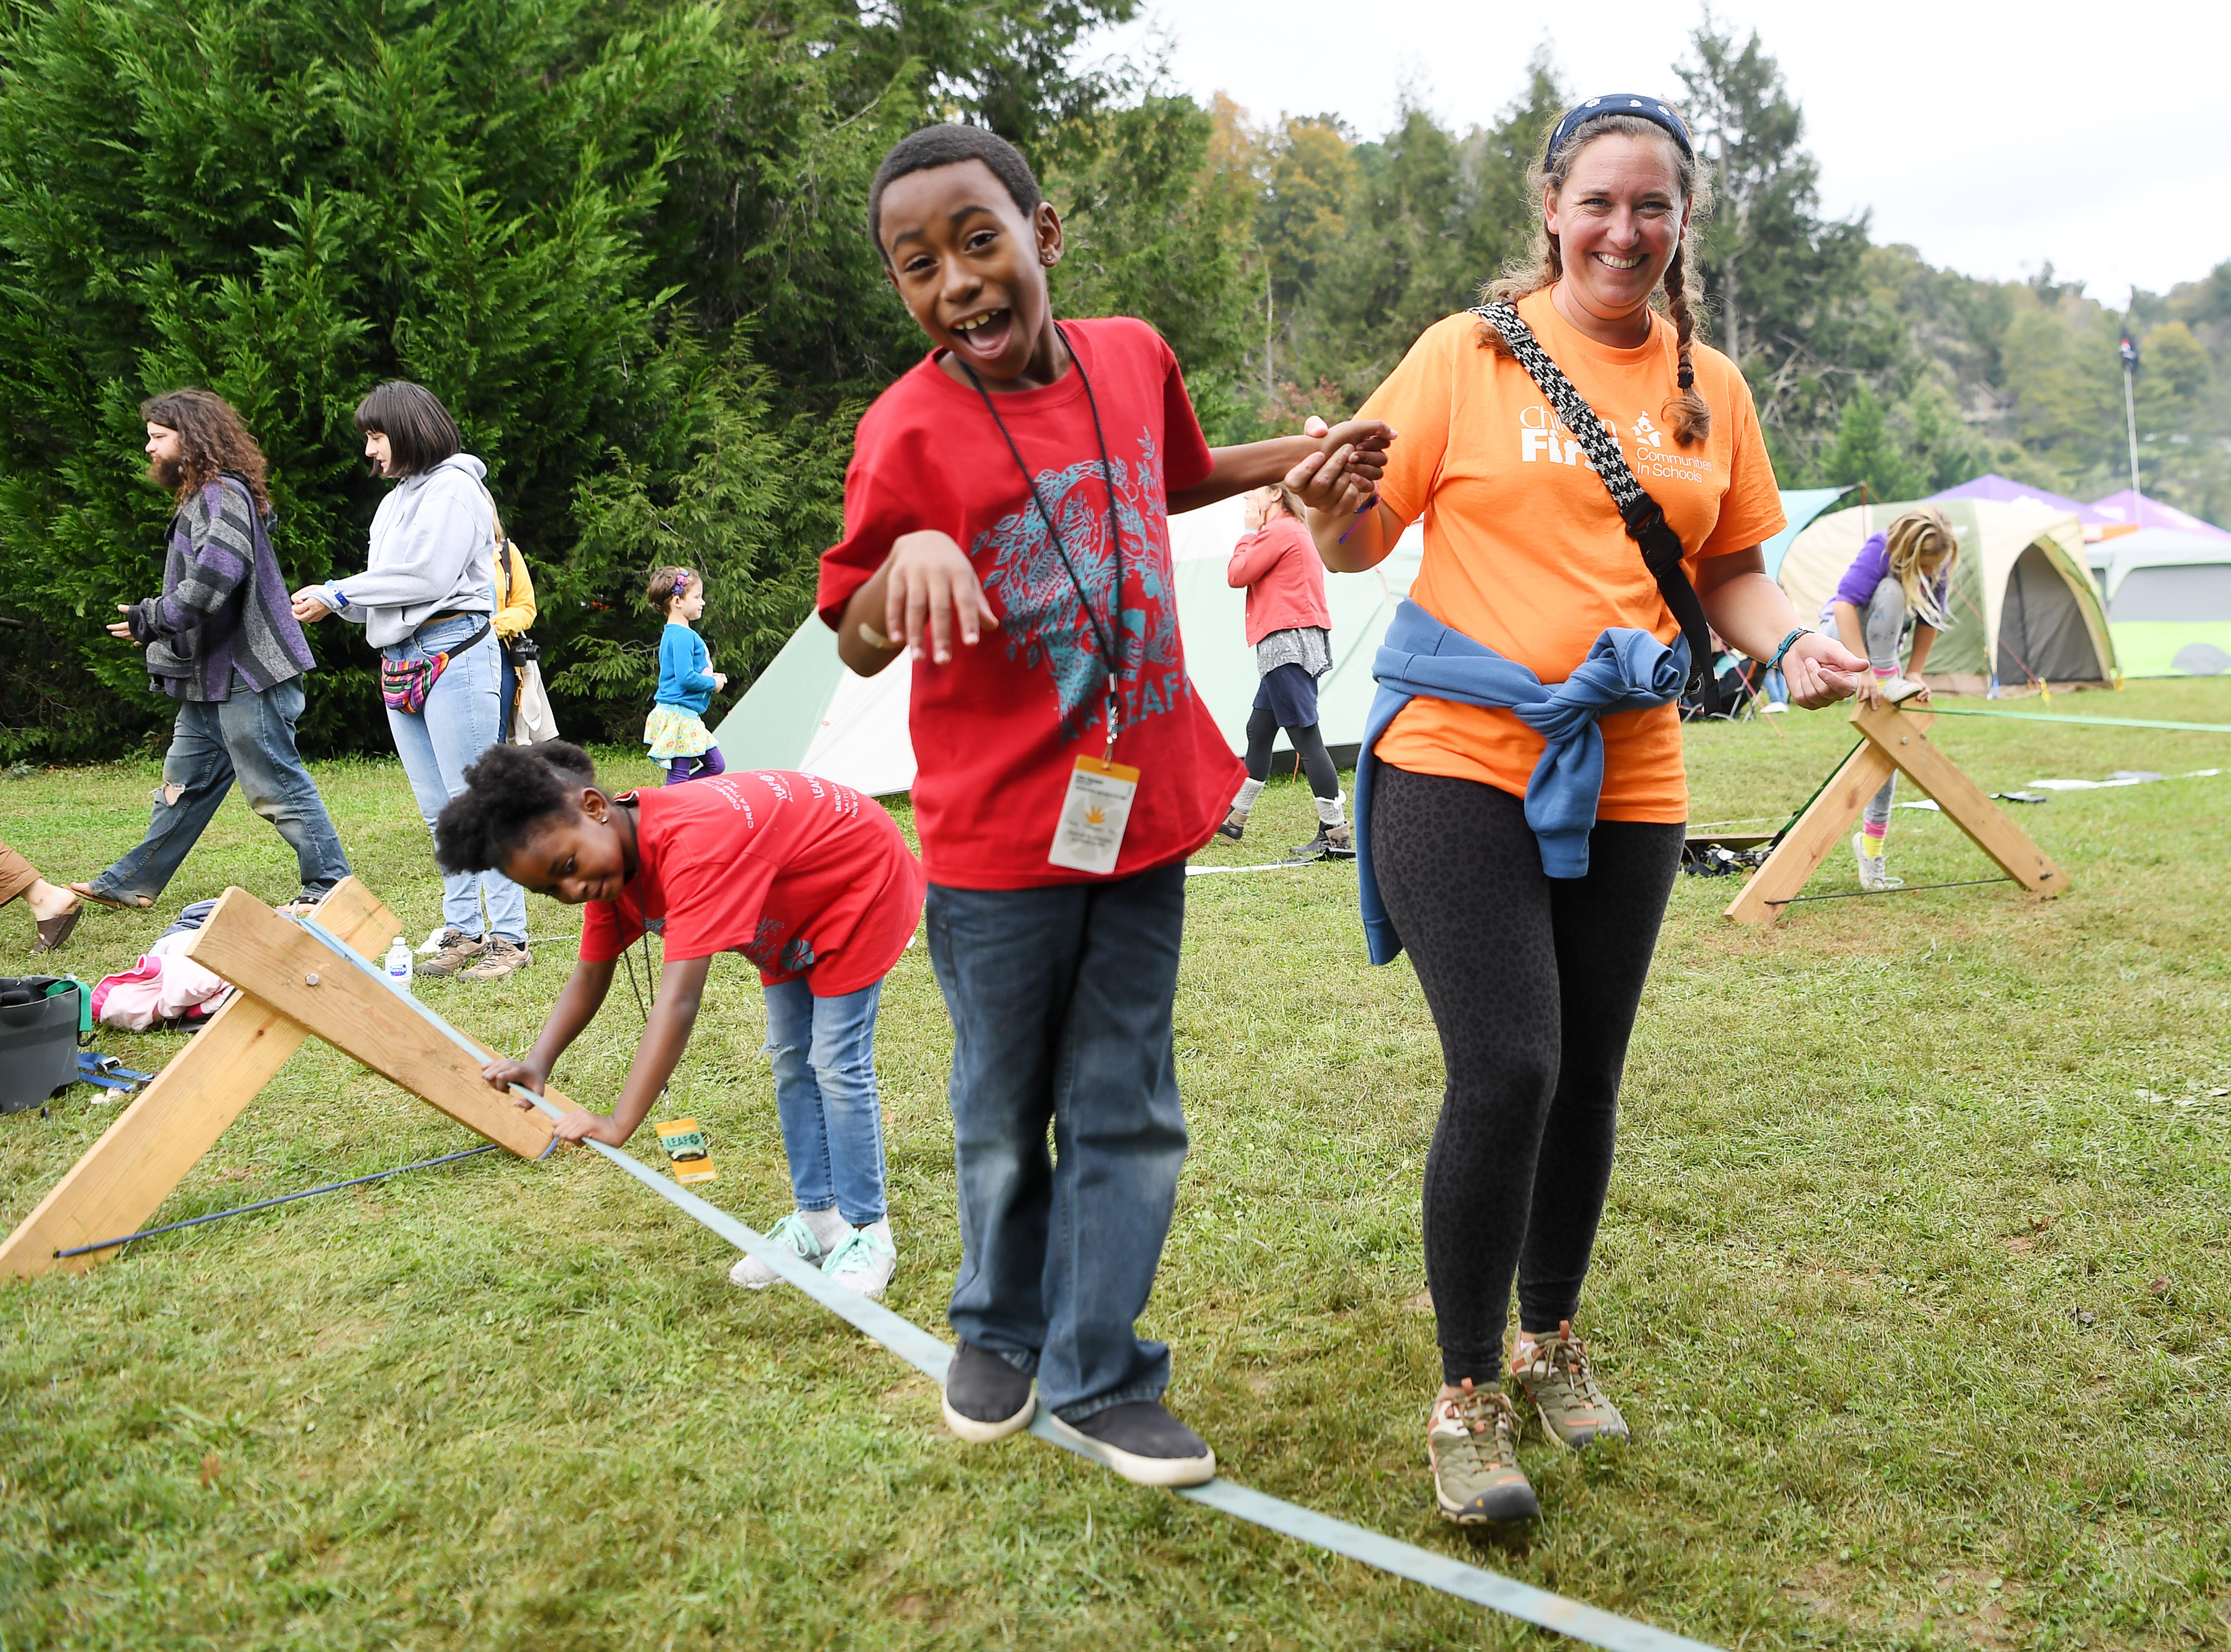 Zion Wright, 8, walks across a slack line with help from Whitney Campassi at the 47th Lake Eden Arts Festival in Black Mountain Oct. 20, 2018.